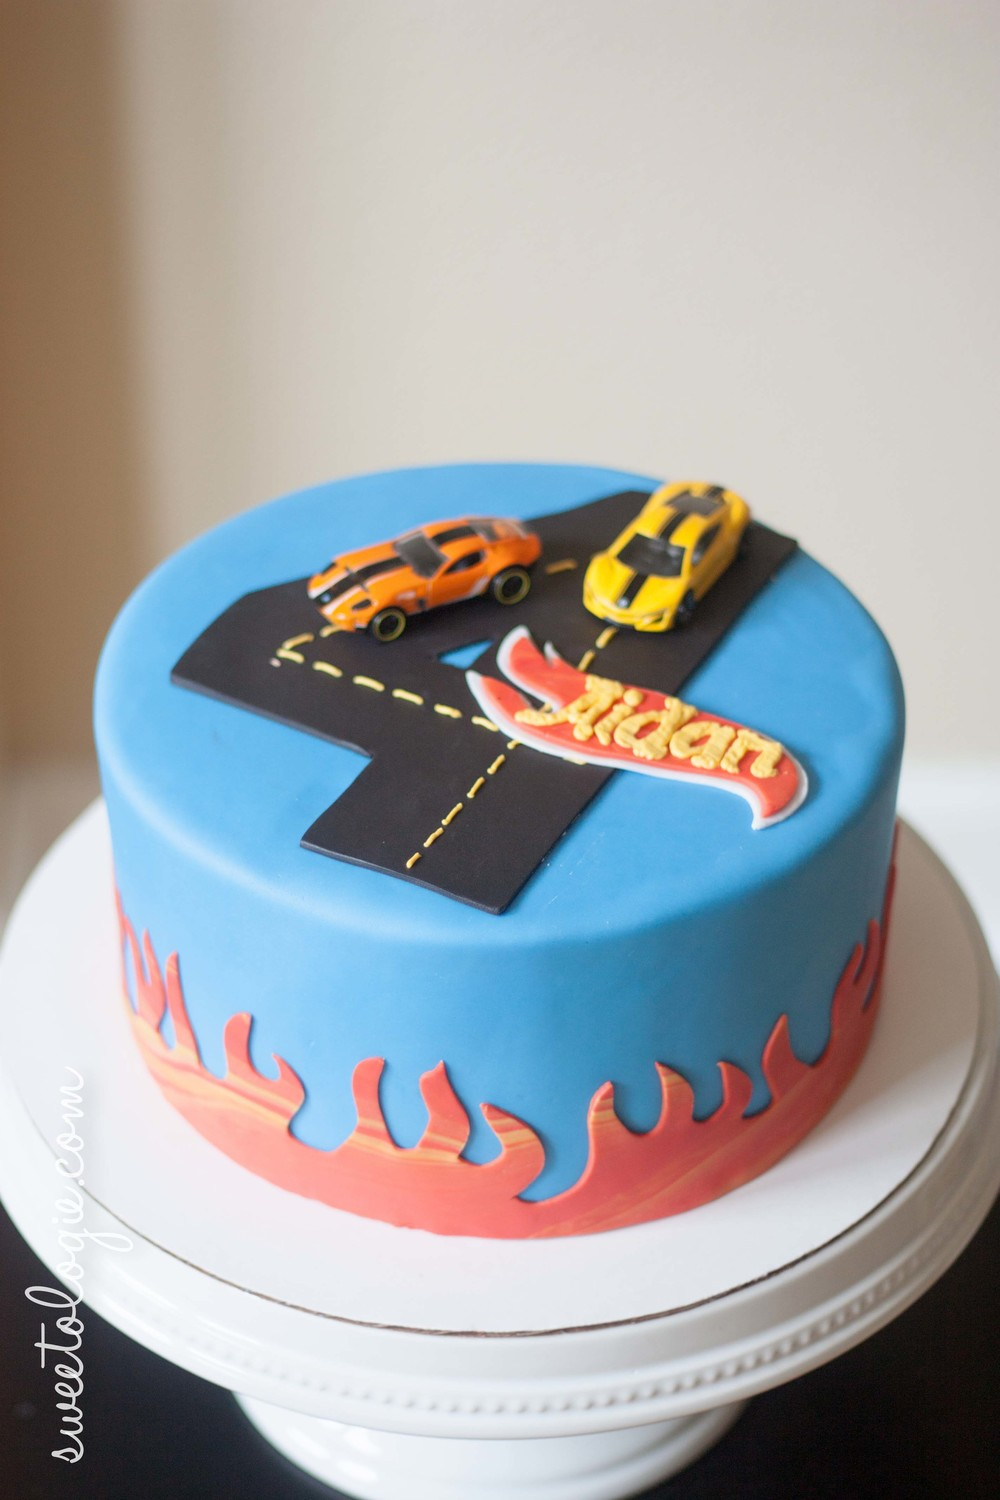 Hot Wheels Cake.jpg